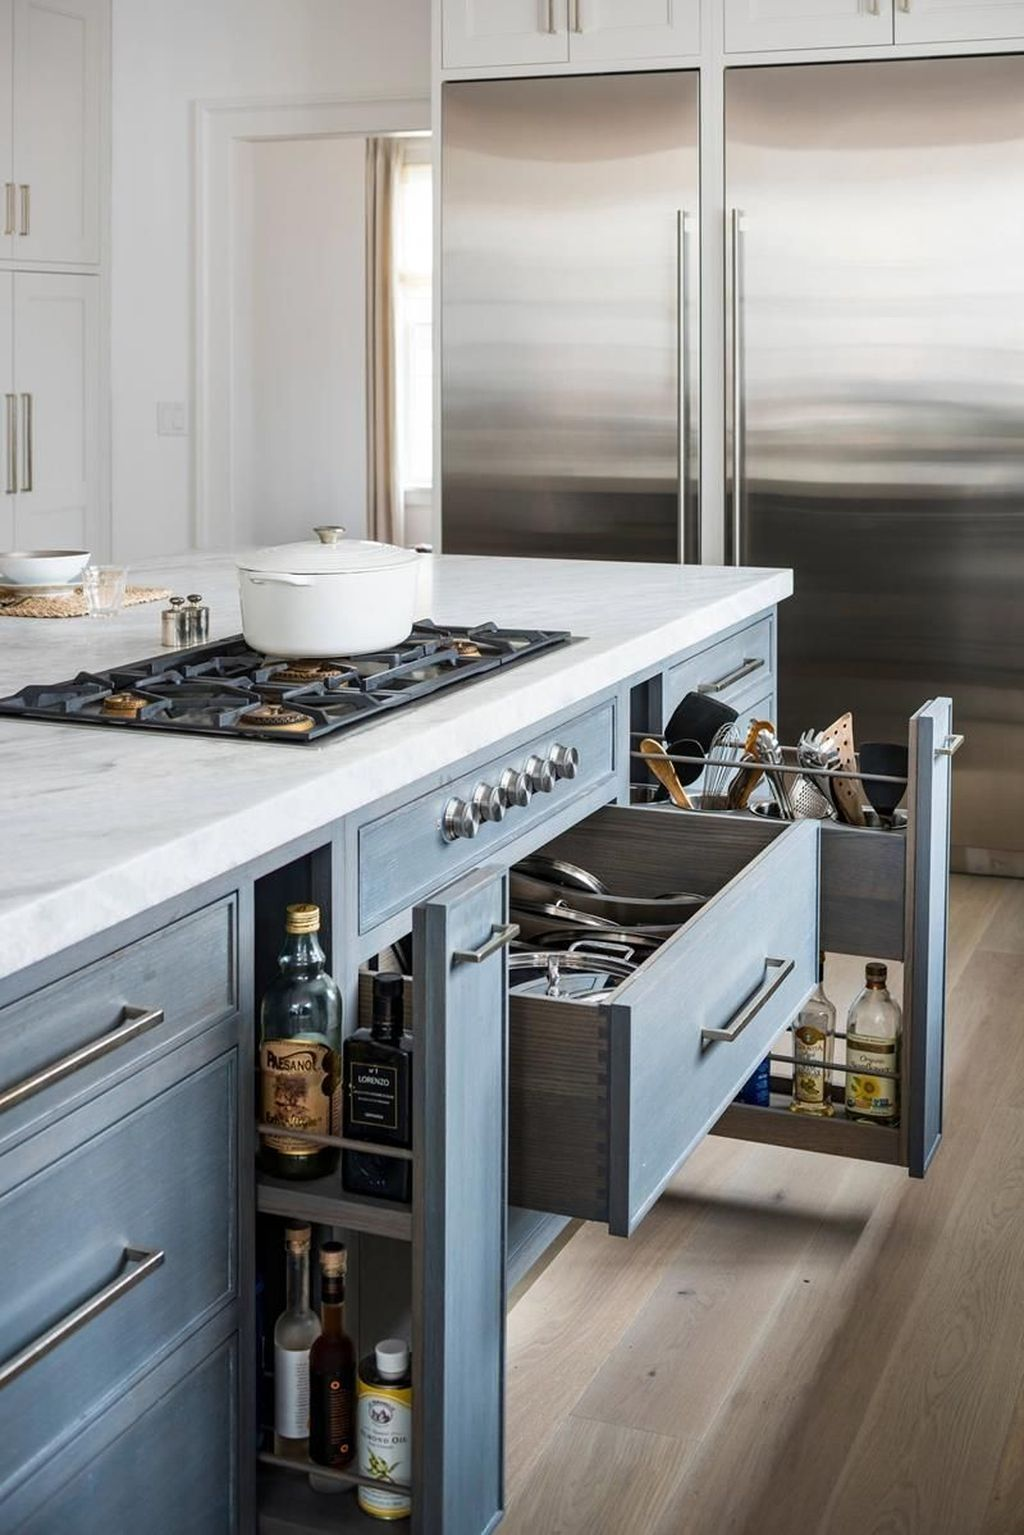 30 Awesome Kitchen Design Ideas To Cooking In Summer American Kitchen Design Kitchen Island With Stove Home Kitchens